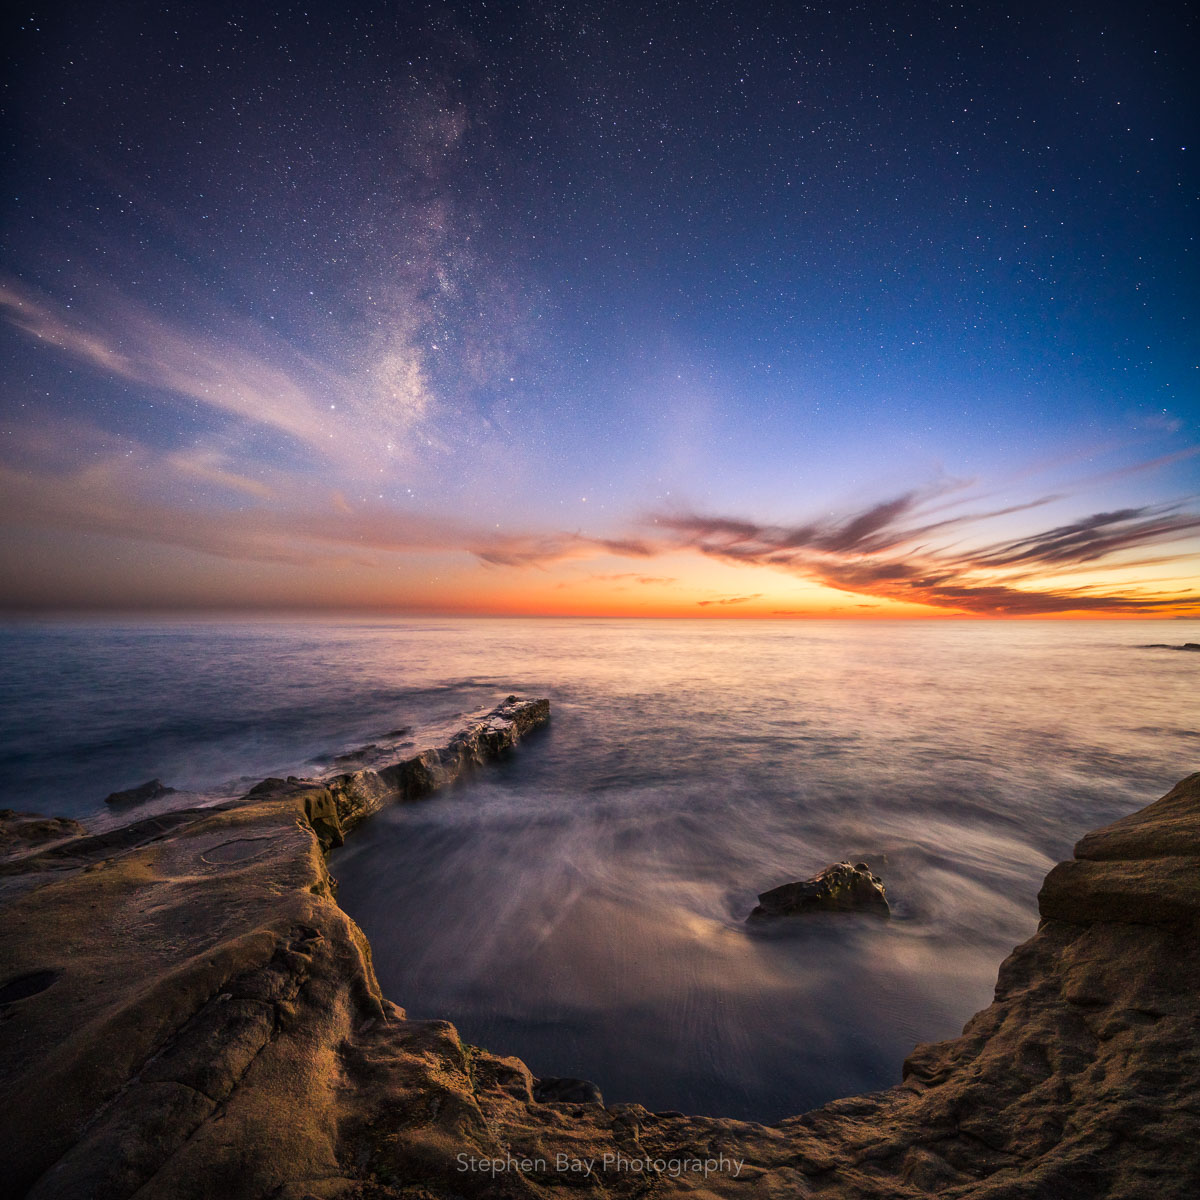 This photo has both the milky way core in the sky and the colors from sunset. The foreground shows the rocks along the La Jolla coast.